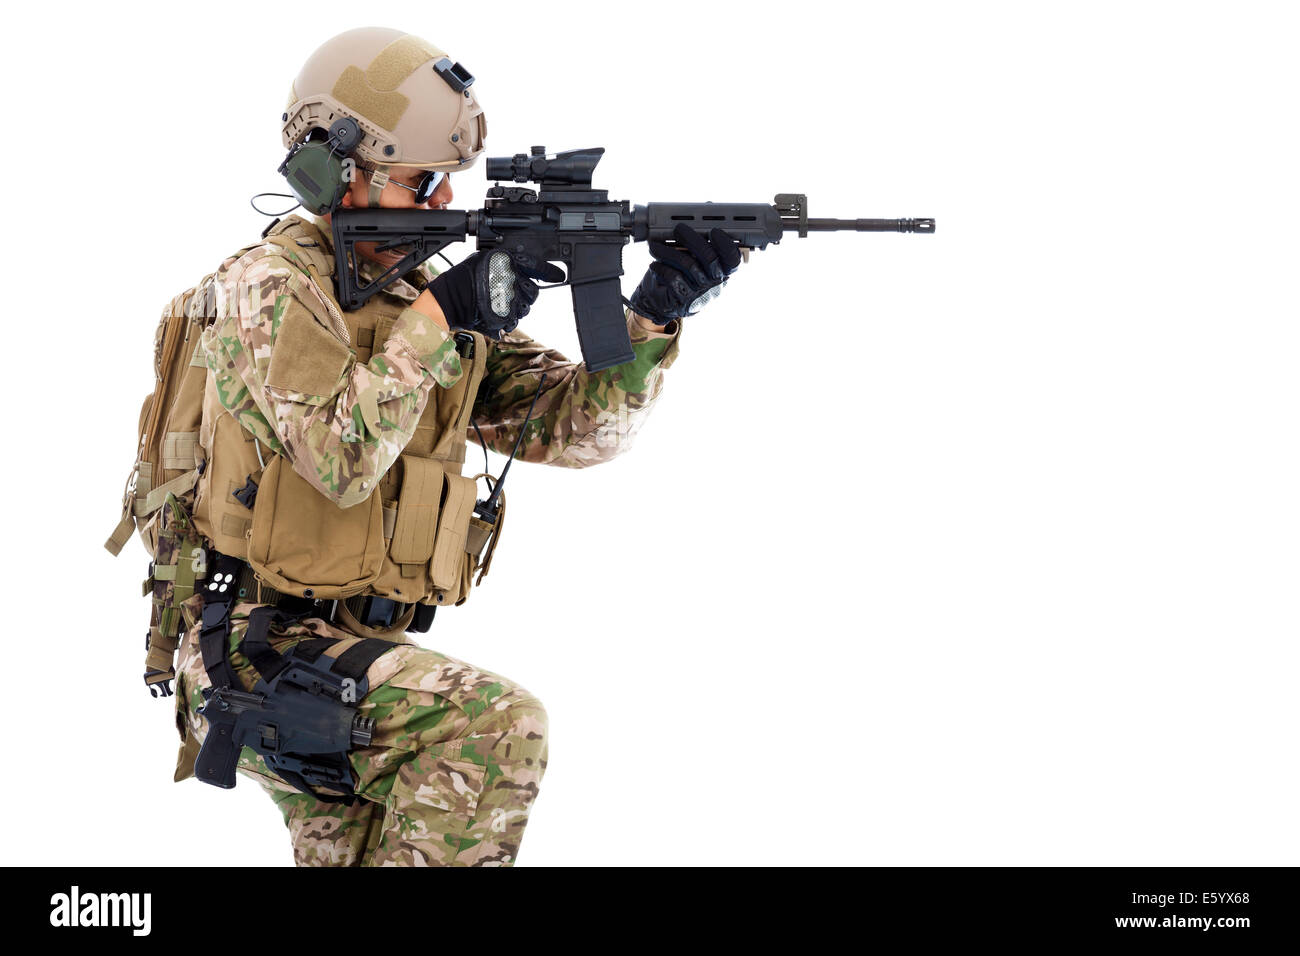 Soldier holding  rifle or sniper and ready to shot - Stock Image